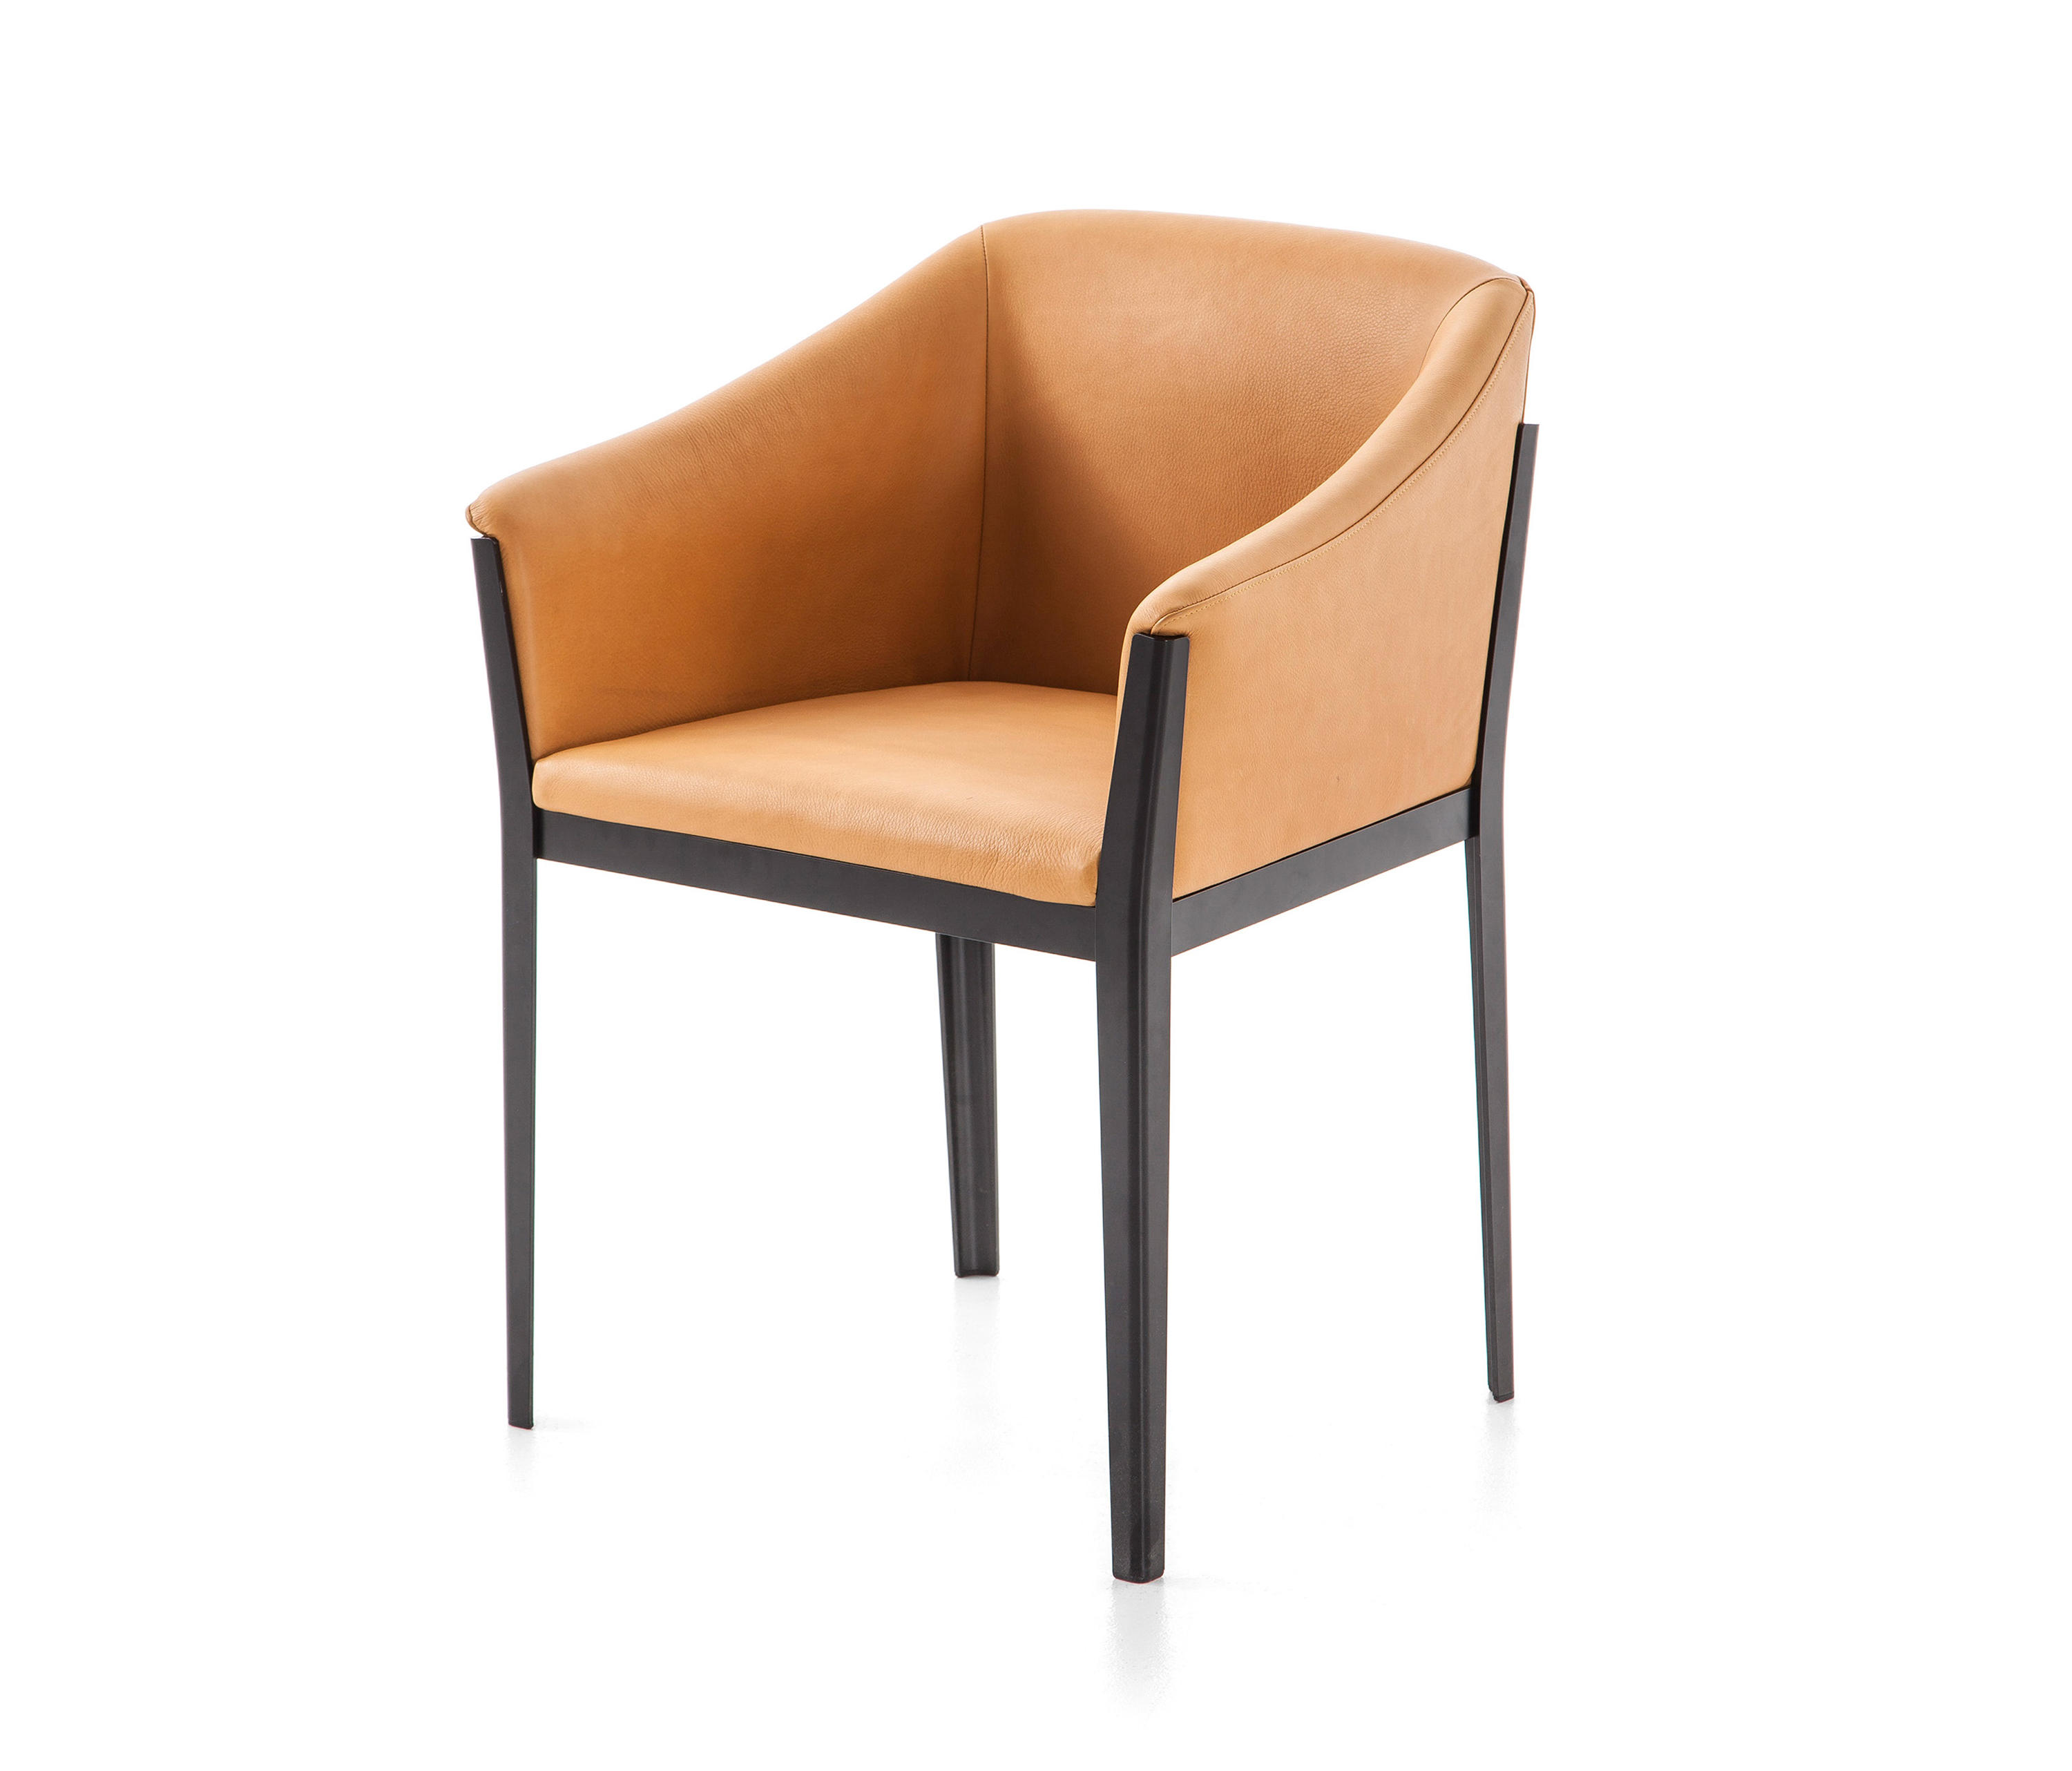 140 Cotone Slim By Cassina | Chairs ...